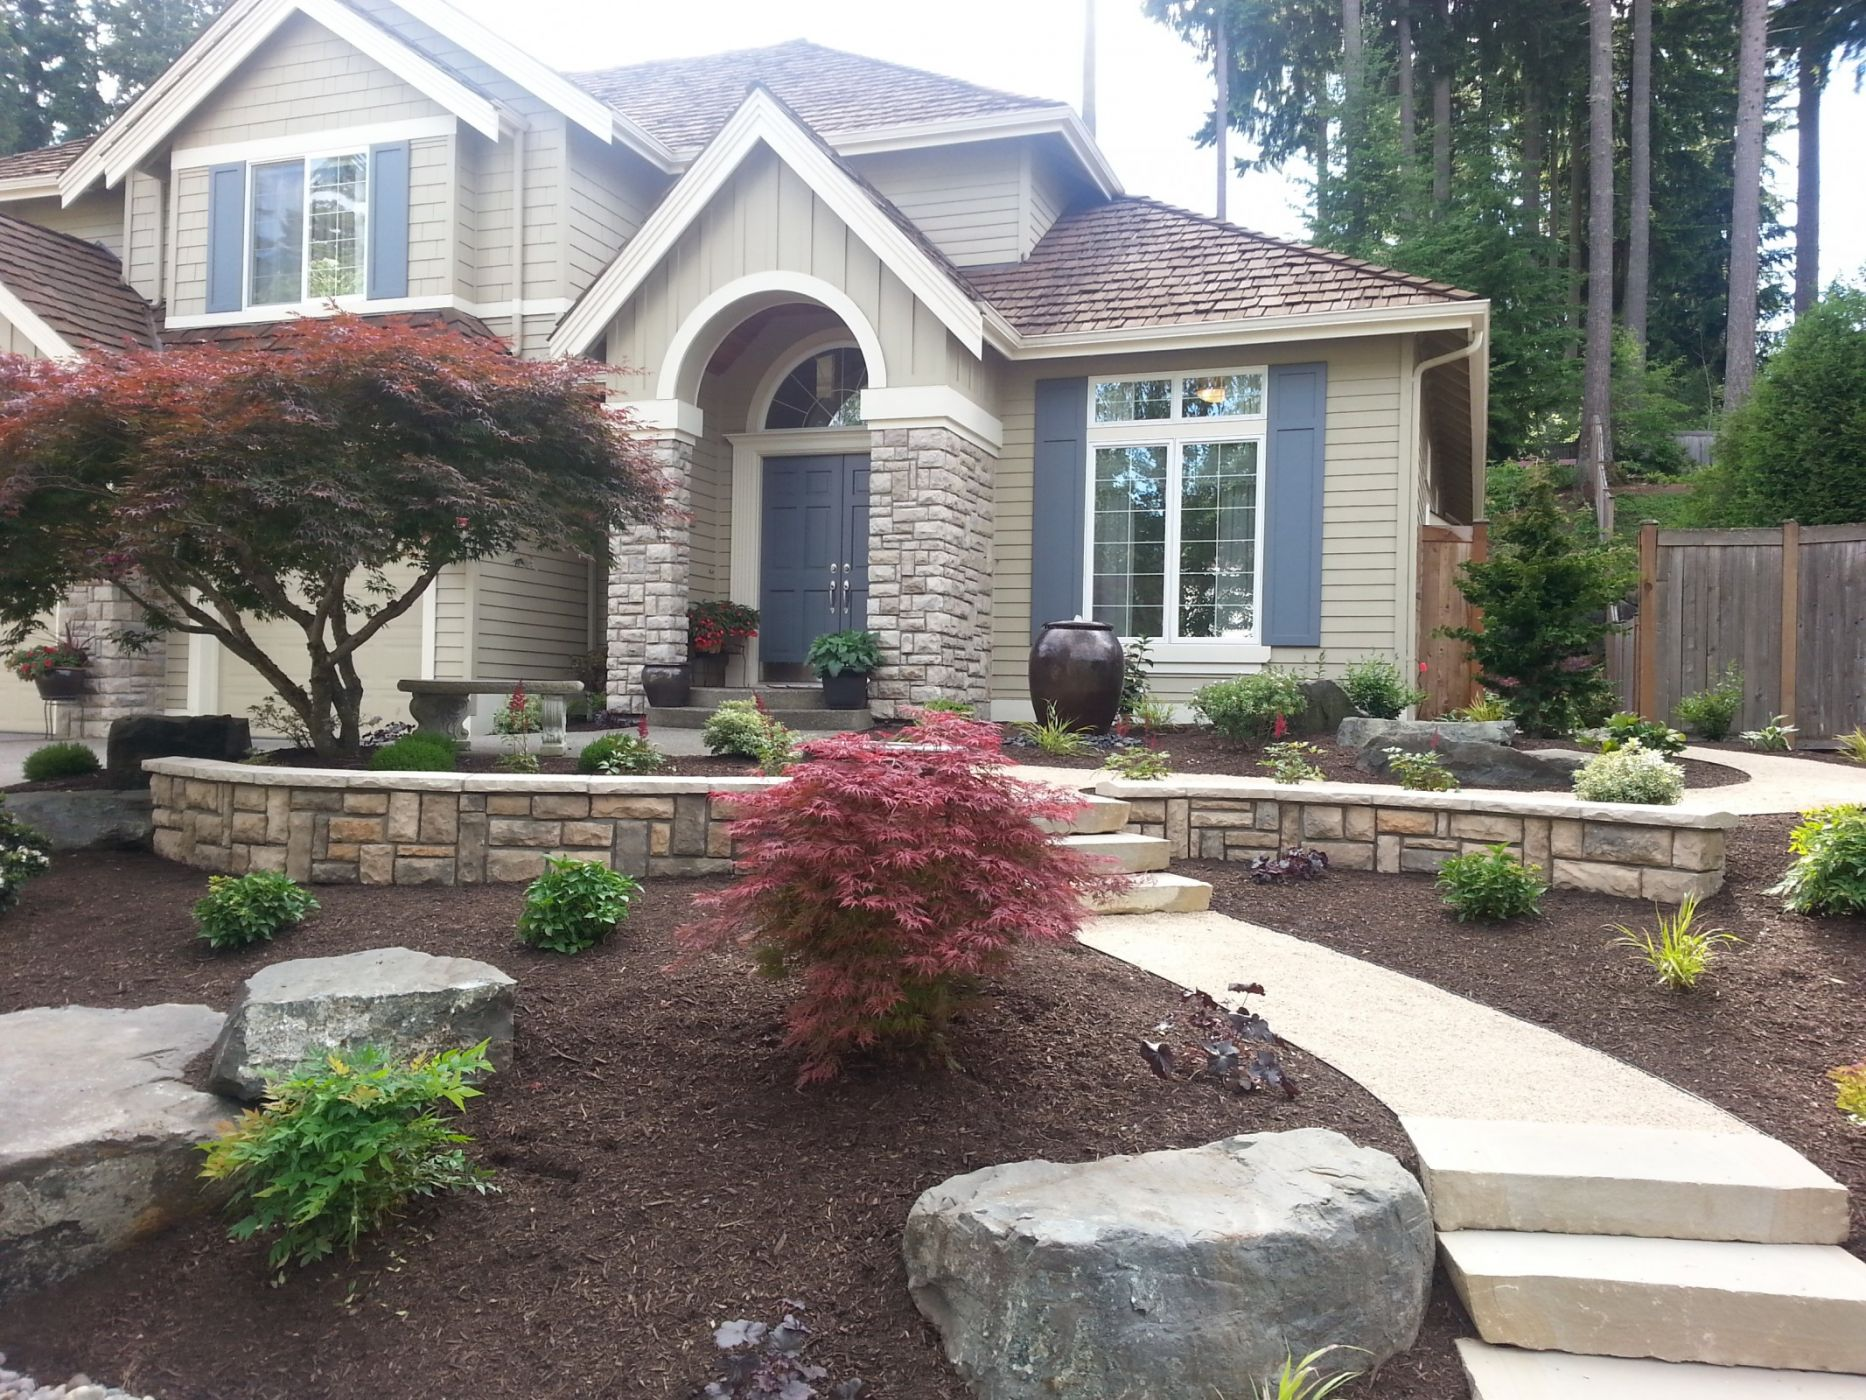 Janika landscaping ideas front yard illinois here for Front lawn landscaping